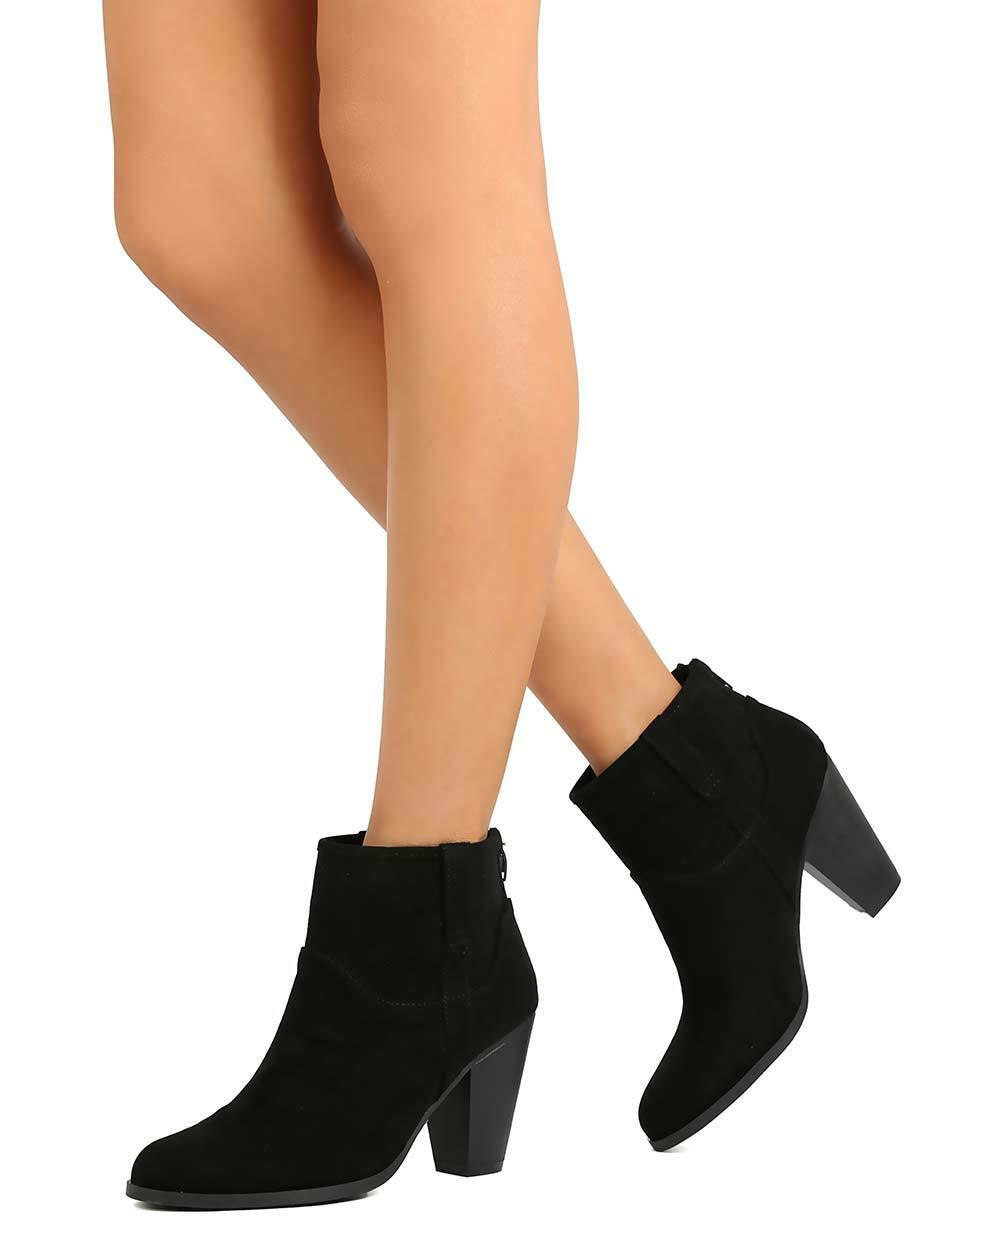 New Women Qupid Nixon-35 Faux Suede Perforated Chunky Heel Ankle Bootie